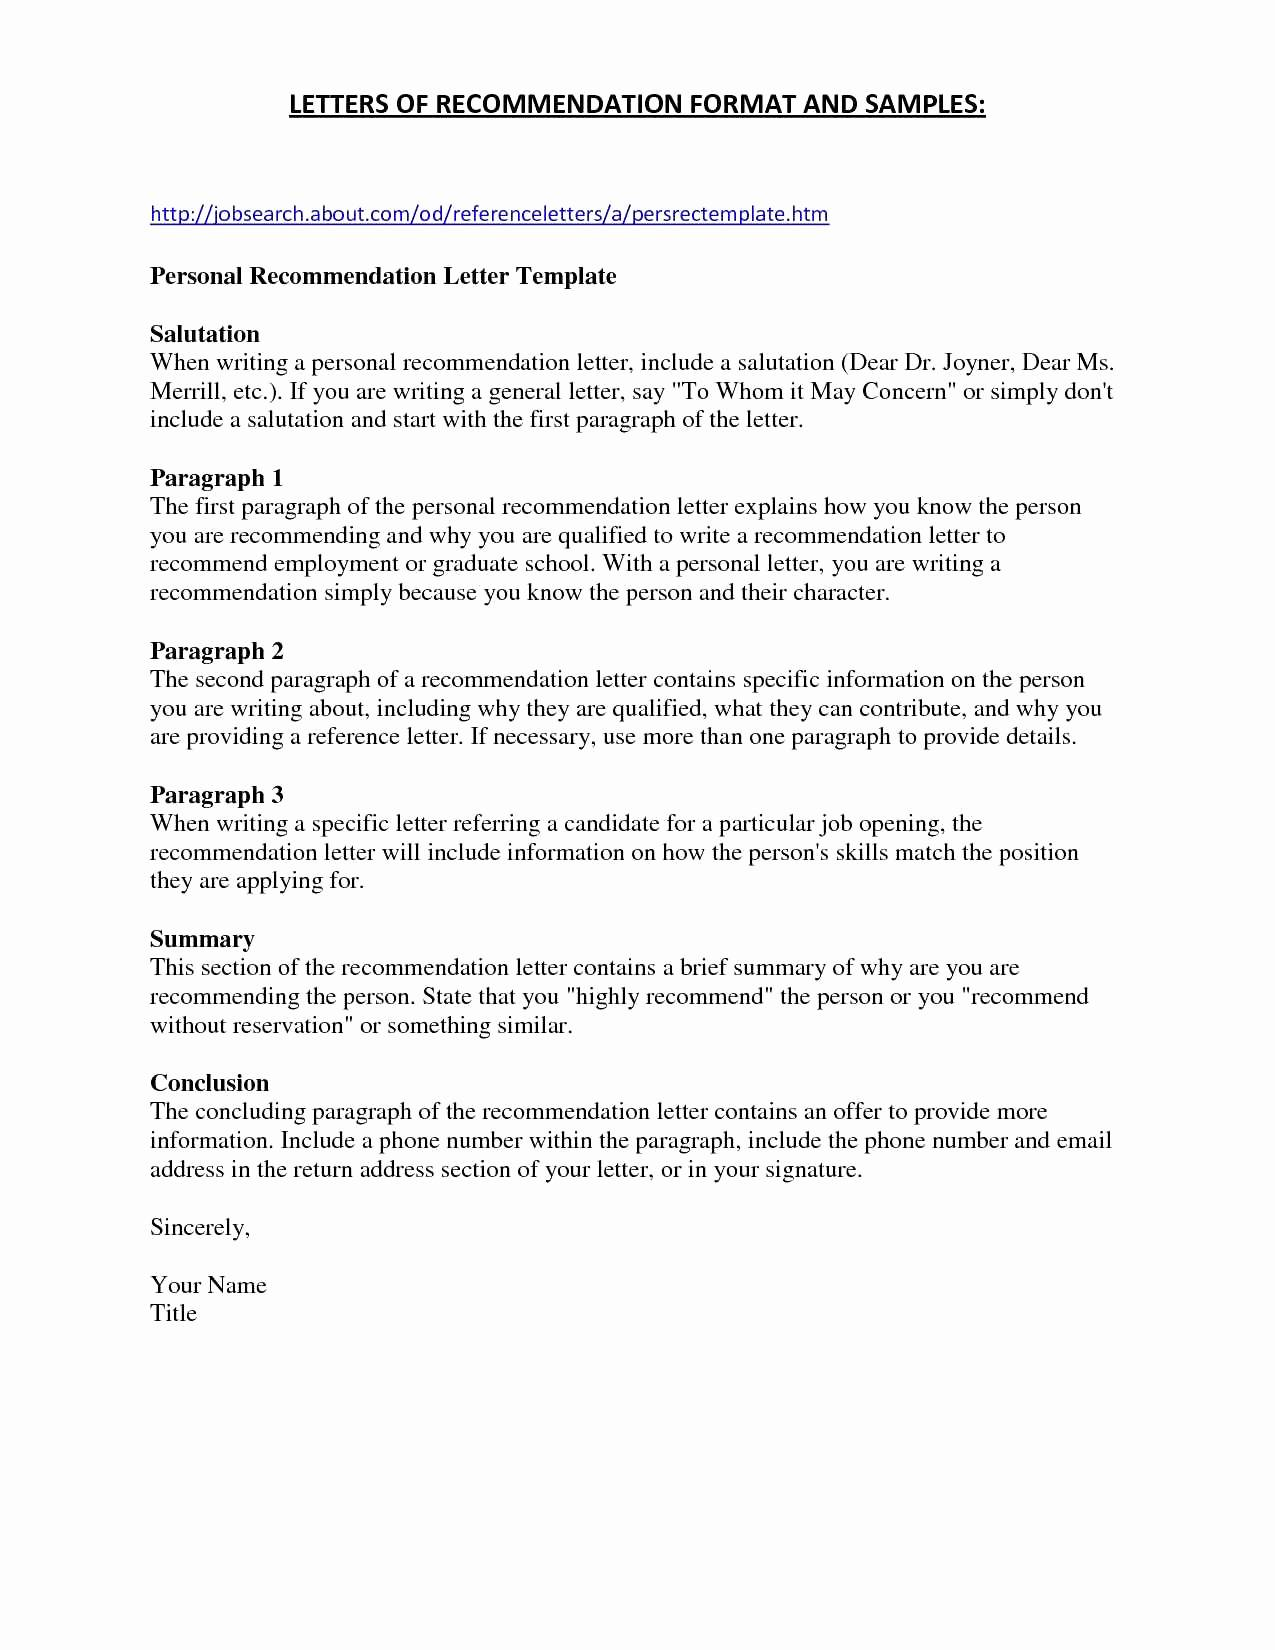 Personal recommendation letter template free samples for What does a cover letter entail